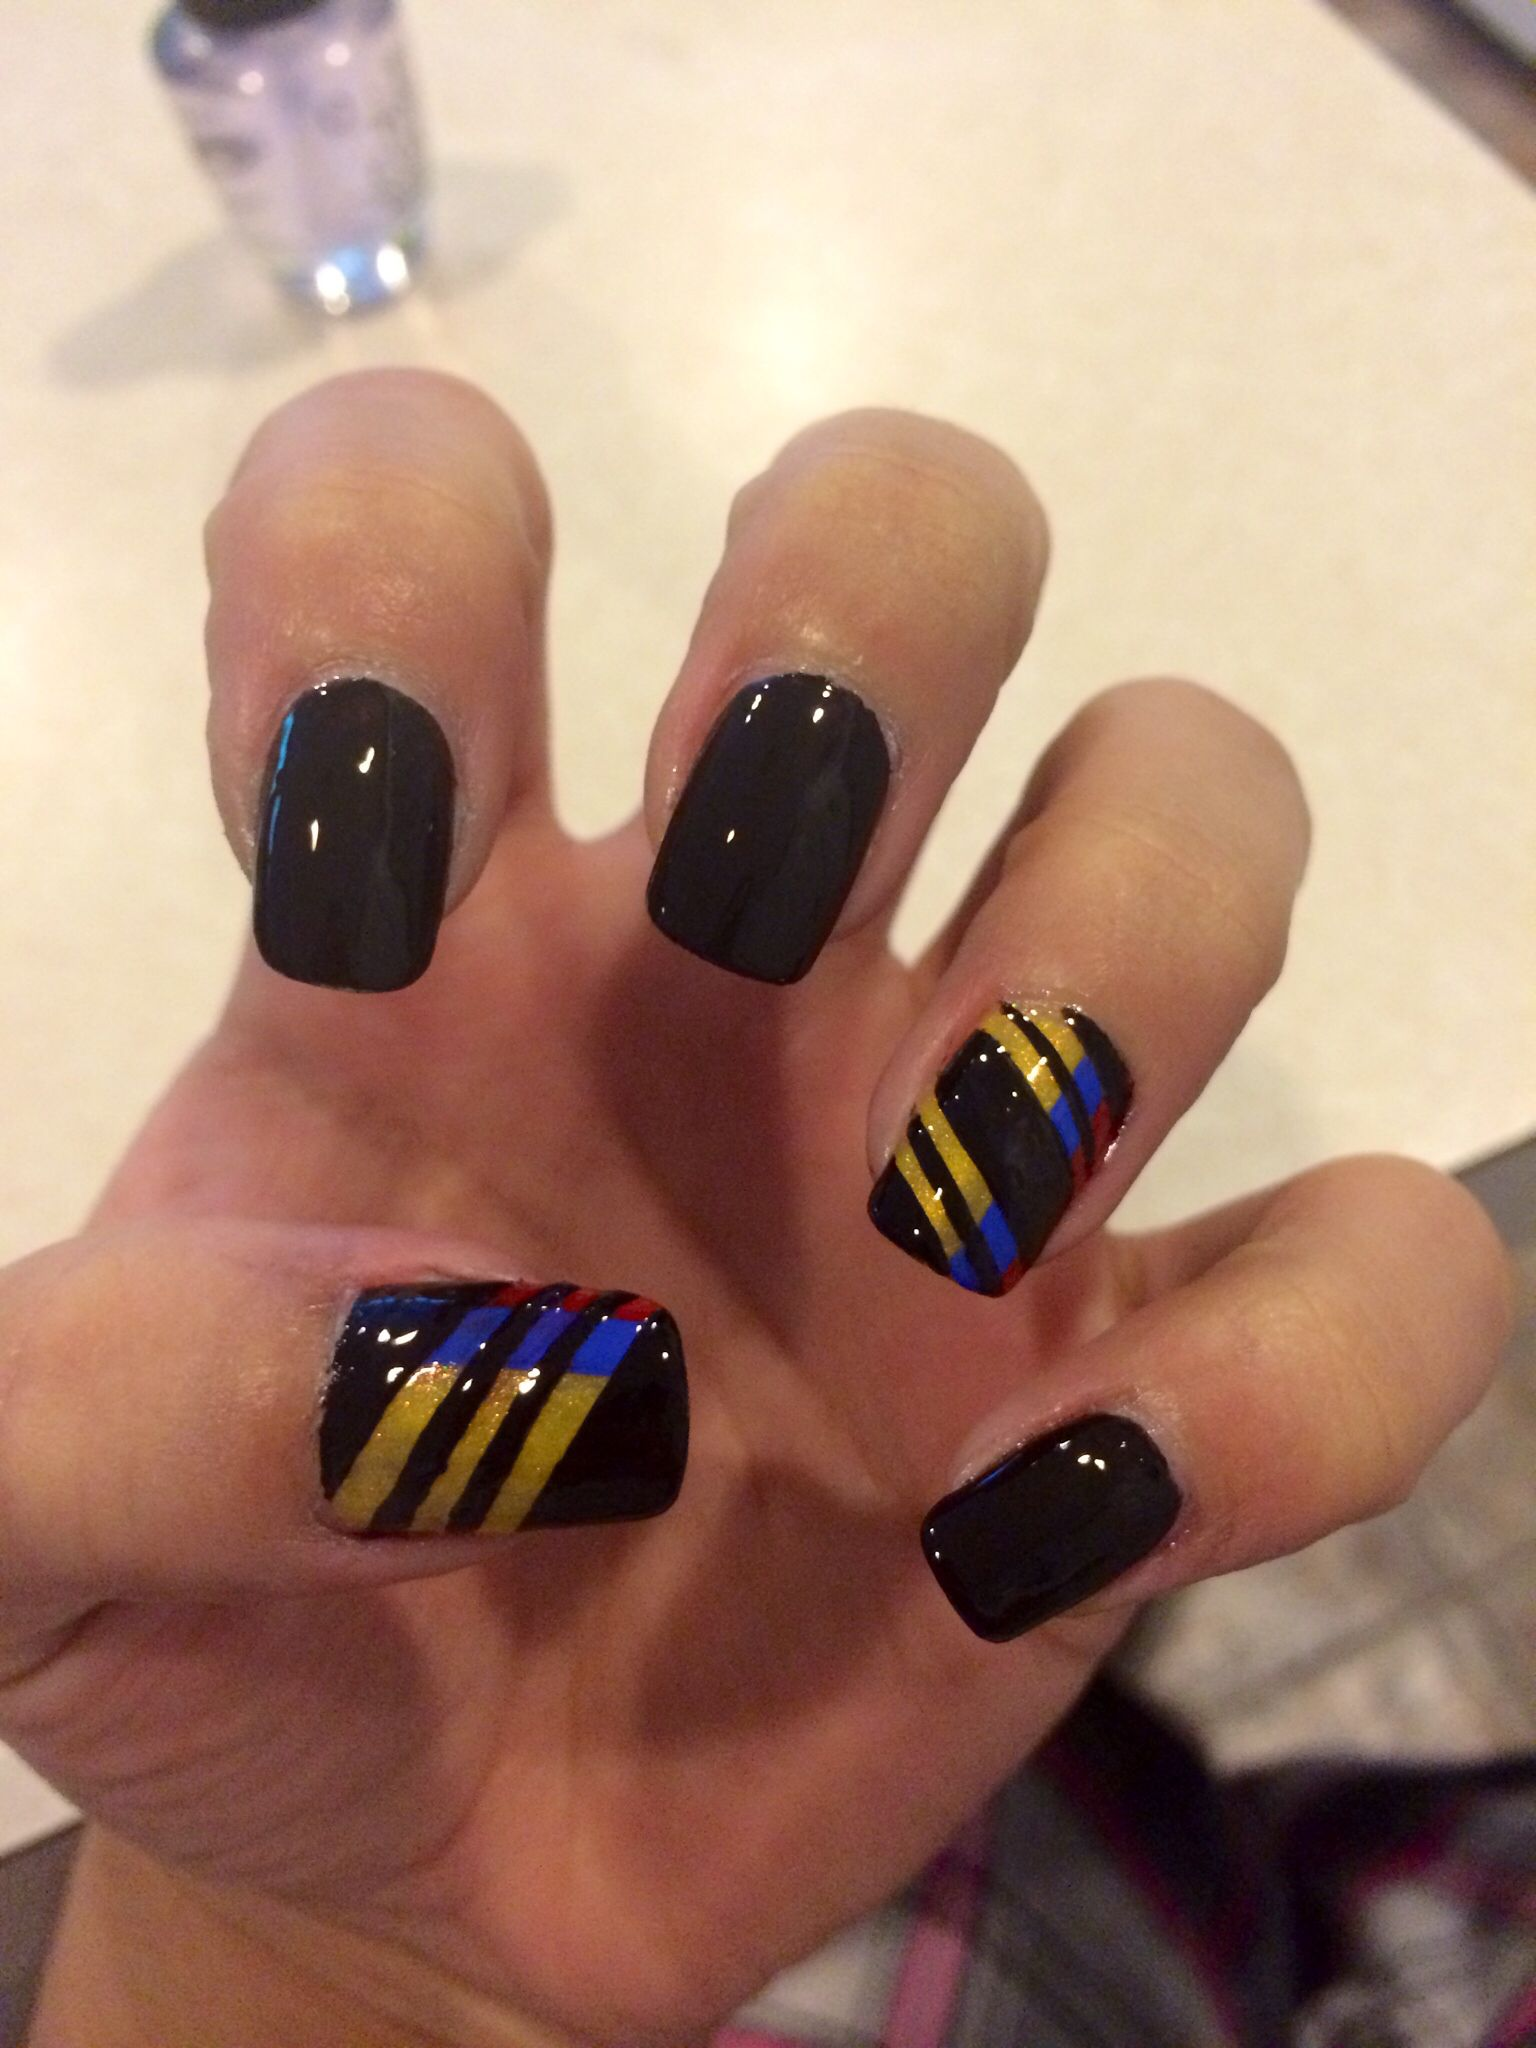 My Colombian Nail Art Nails Pinterest Manicure Makeup And